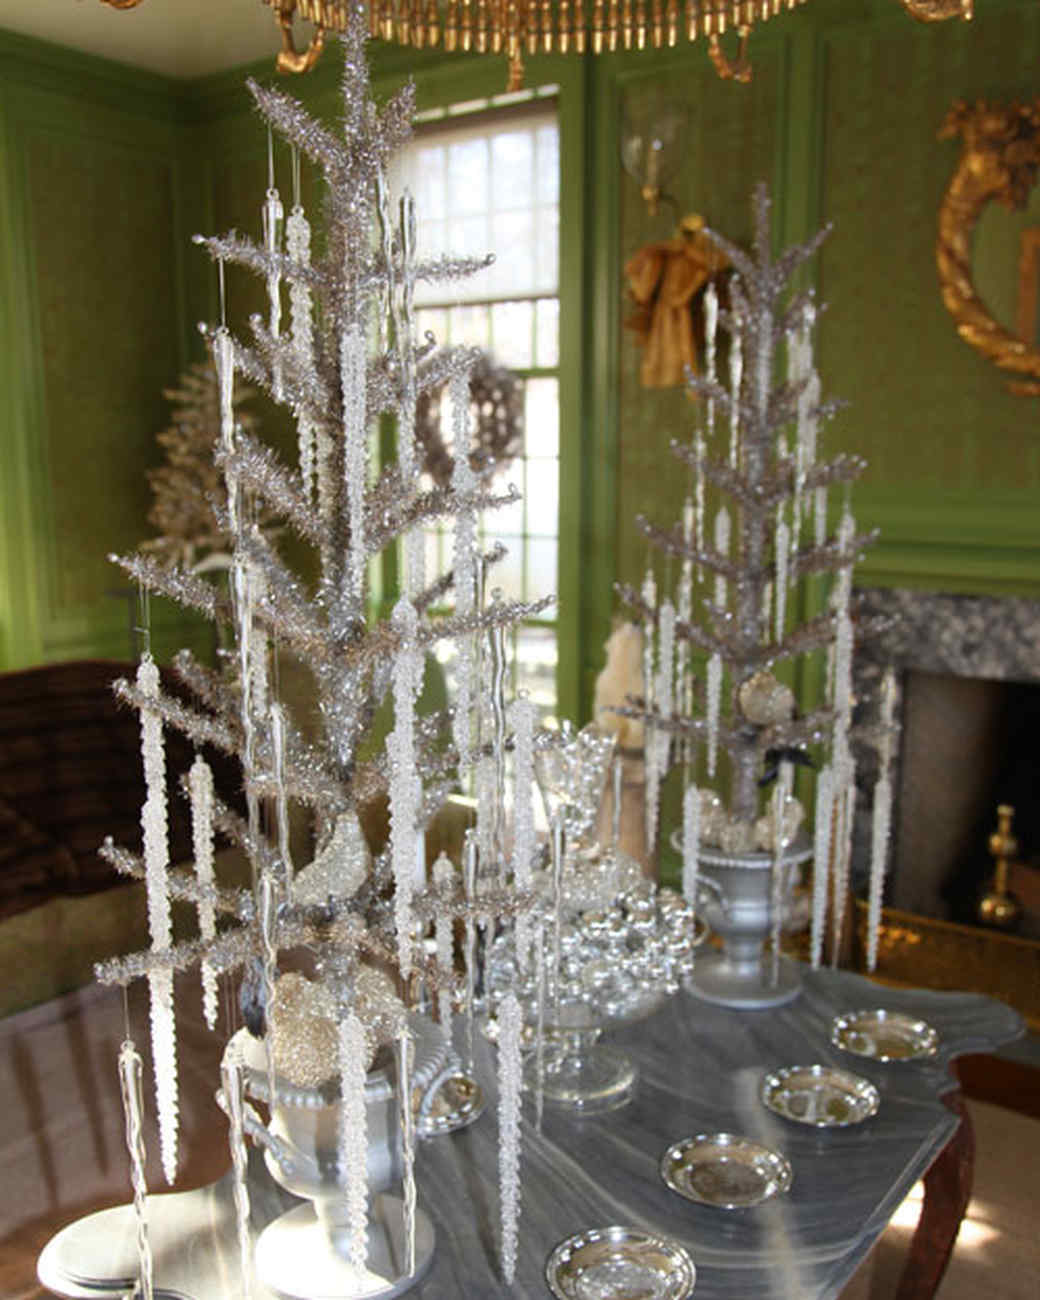 Martha's Holiday Decorating Ideas